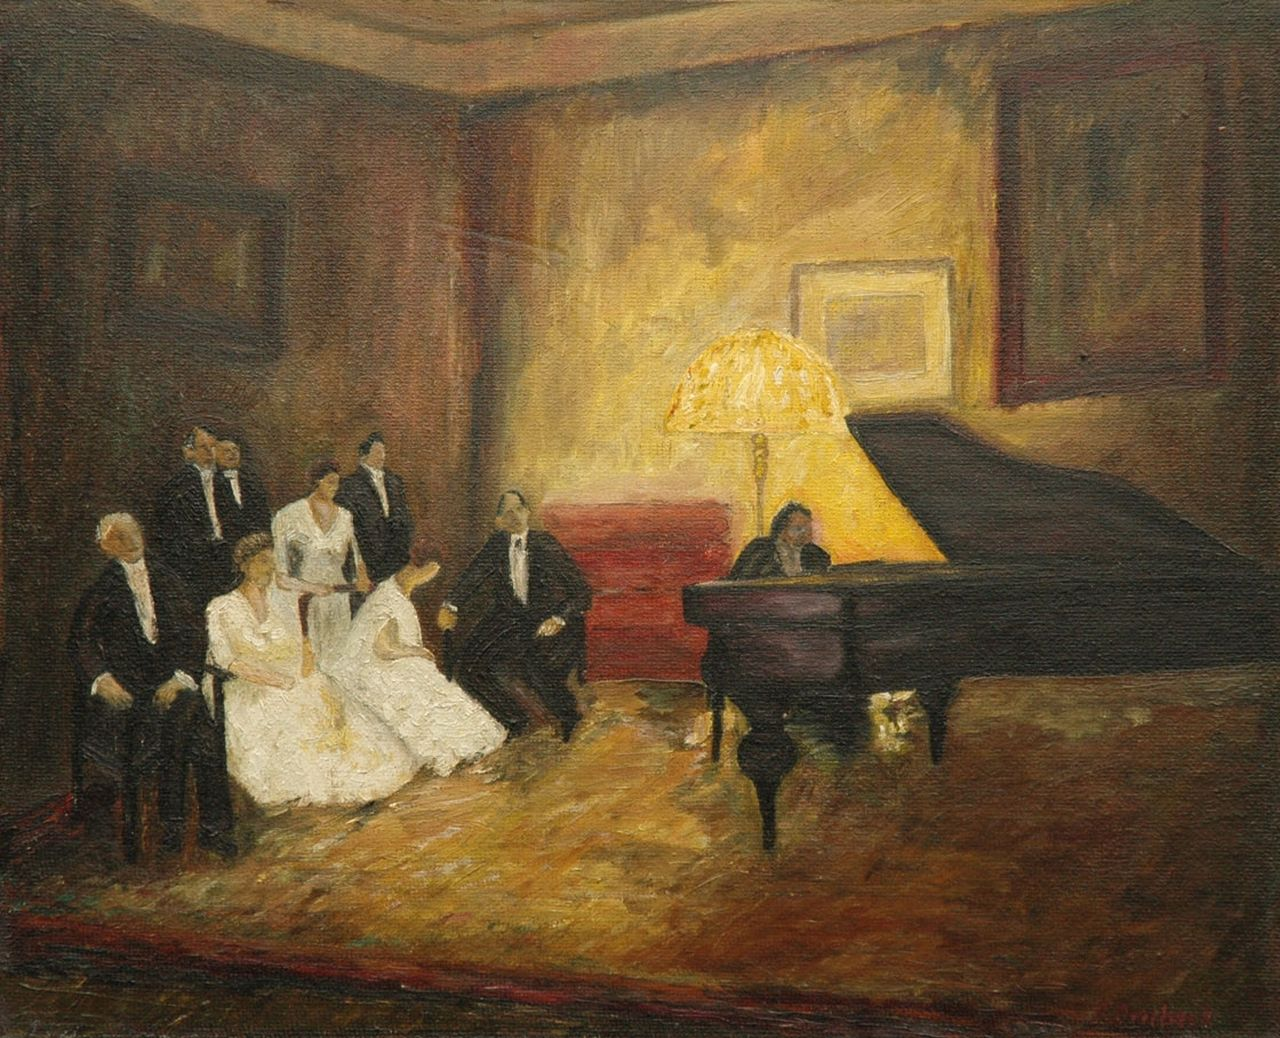 Fritz Overbeck | An evening with music, oil on board, 40.1 x 49.7 cm, signed l.r.